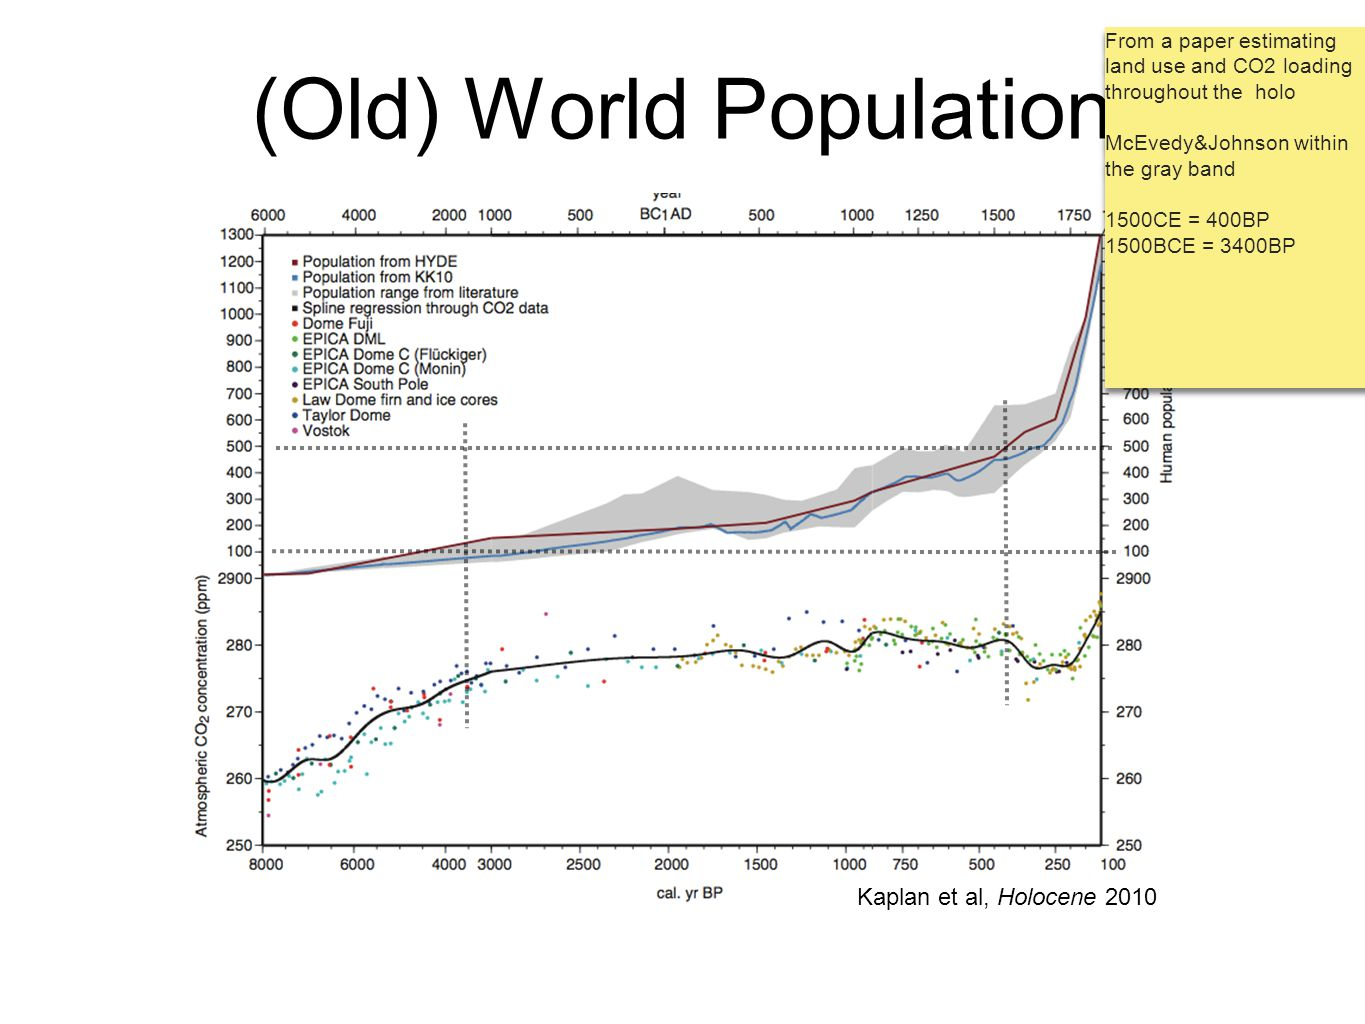 (Old) World Population Kaplan et al, Holocene 2010 From a paper estimating land use and CO2 loading throughout the holo McEvedy&Johnson within the gra